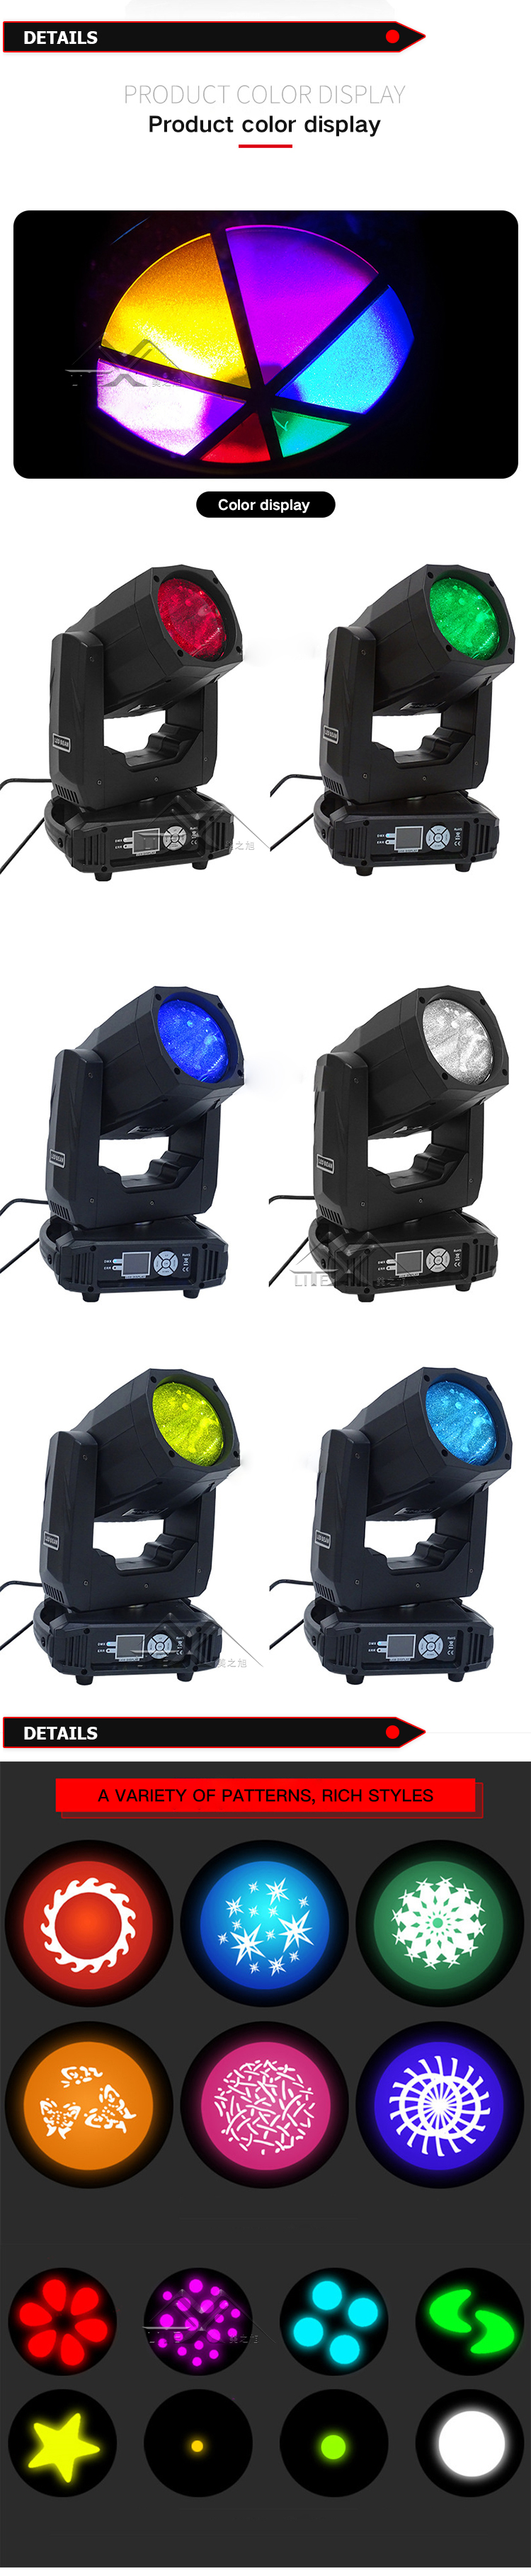 LED Stage Lighting Professional Performance DMX Control 80w sharpy beam moving head light for DJ party